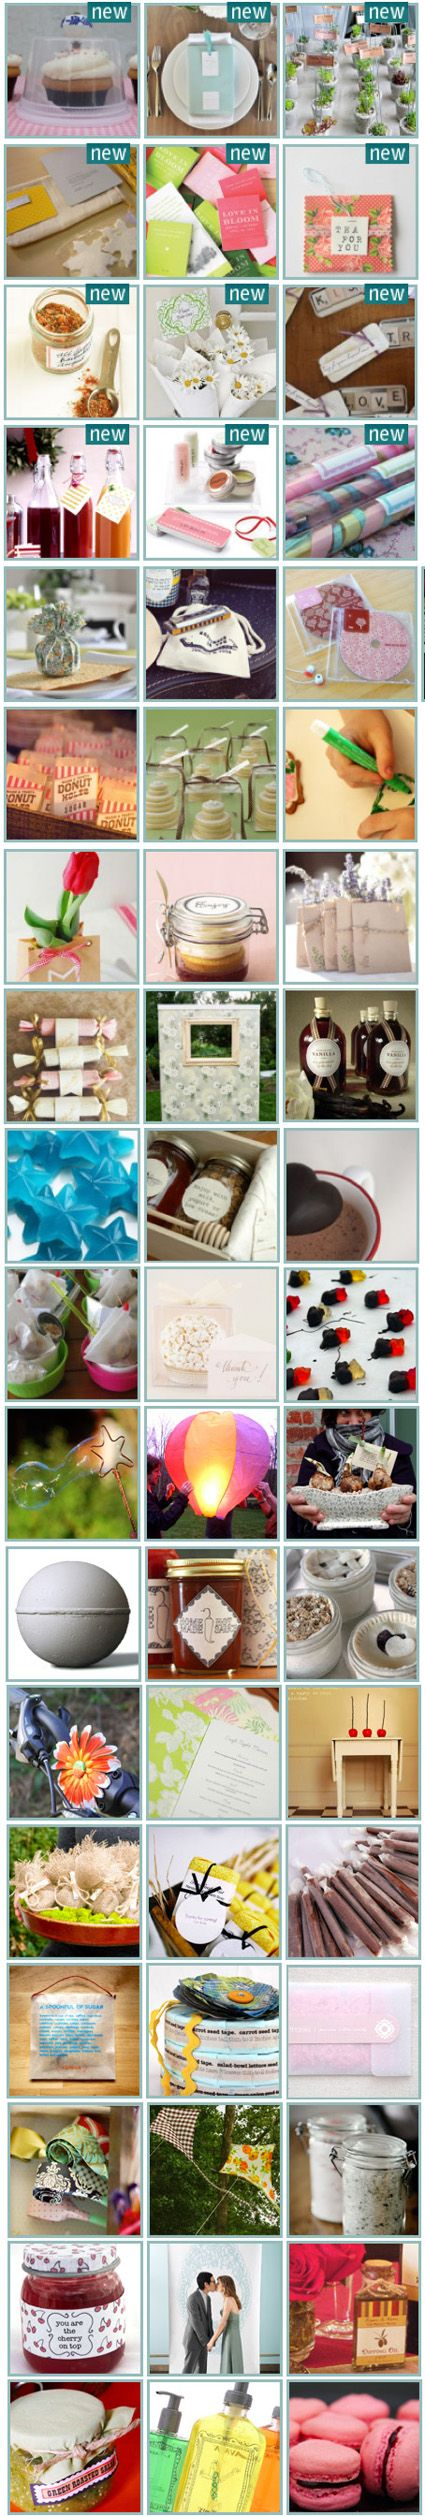 50 wedding favors - Trying to find bubble wand- DYI? cute.